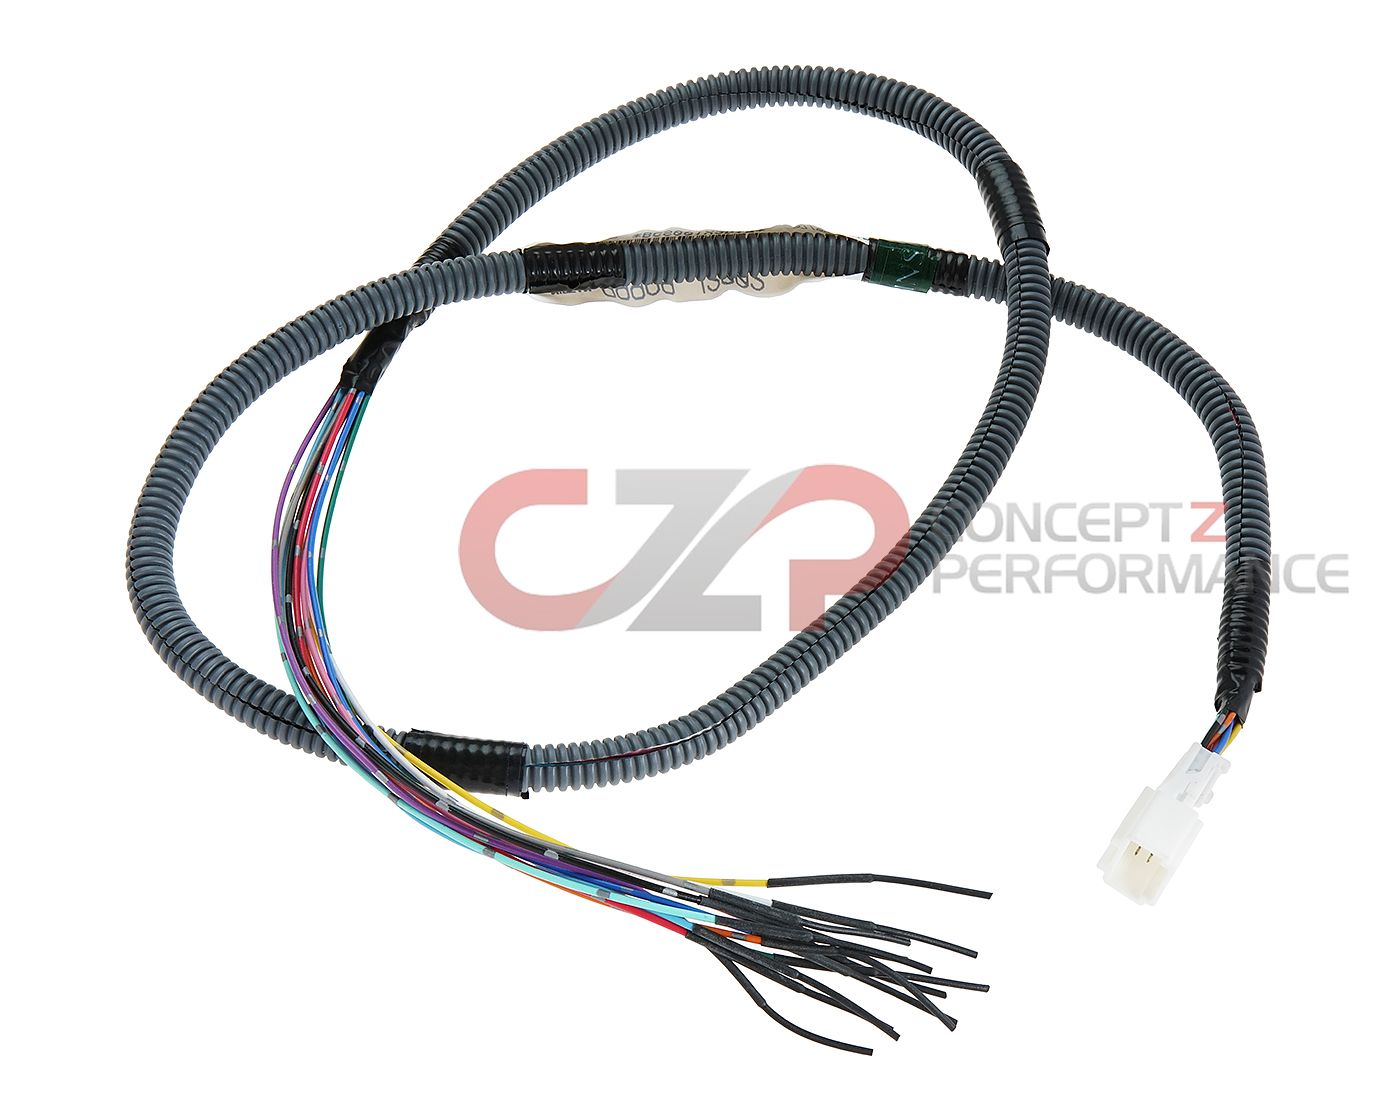 hight resolution of infiniti oem accessory service connector harness for welcome lighting ground illumination infiniti q50 14